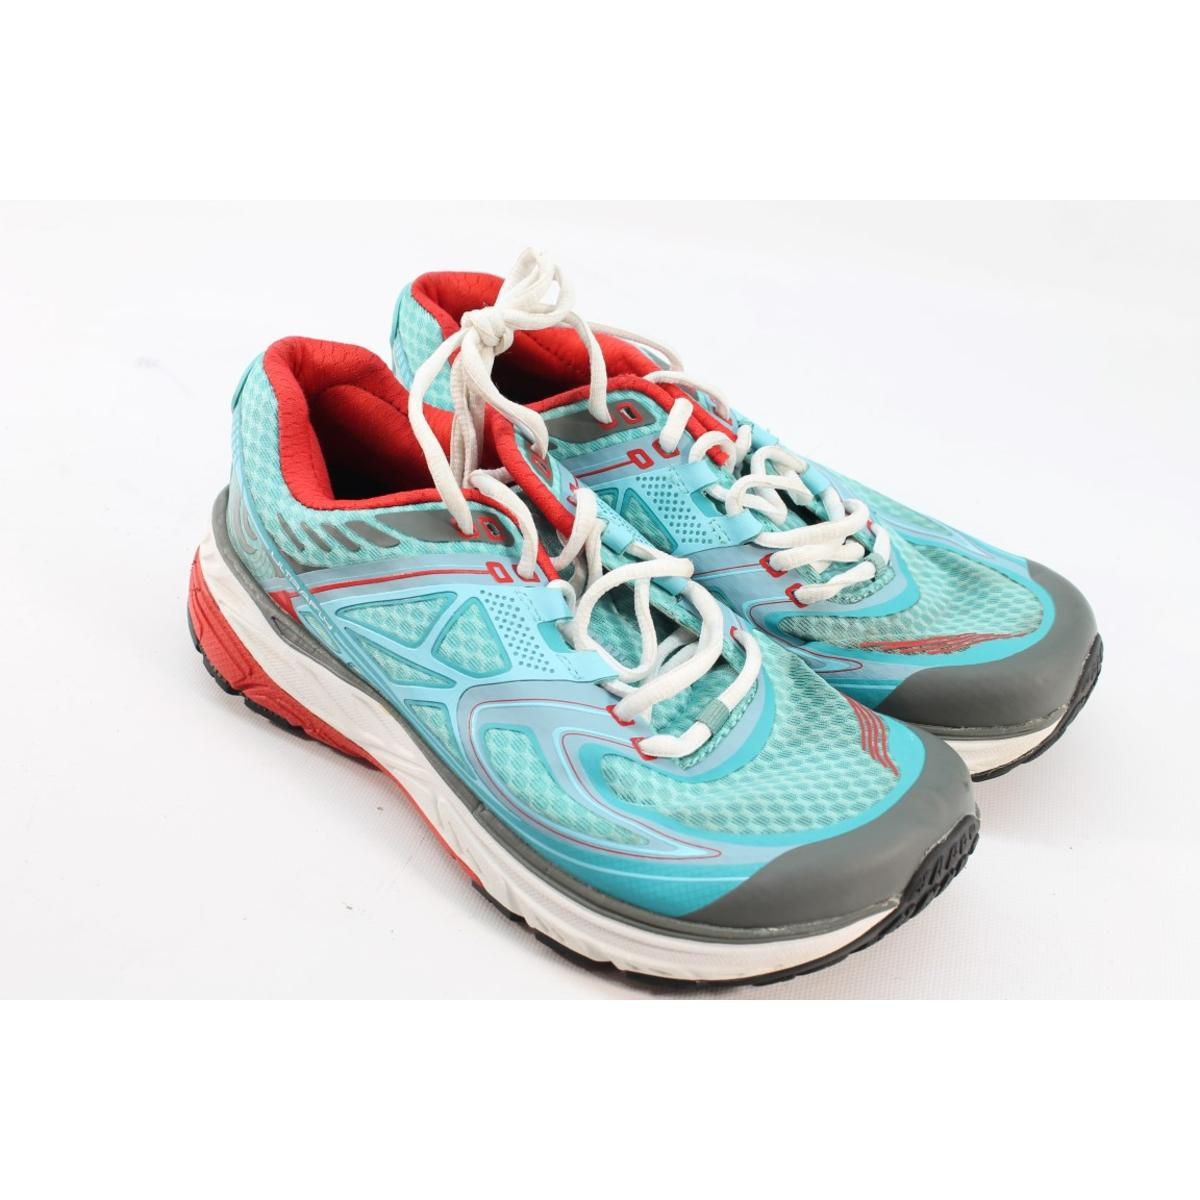 Image result for topo ultrafly running shoes womens